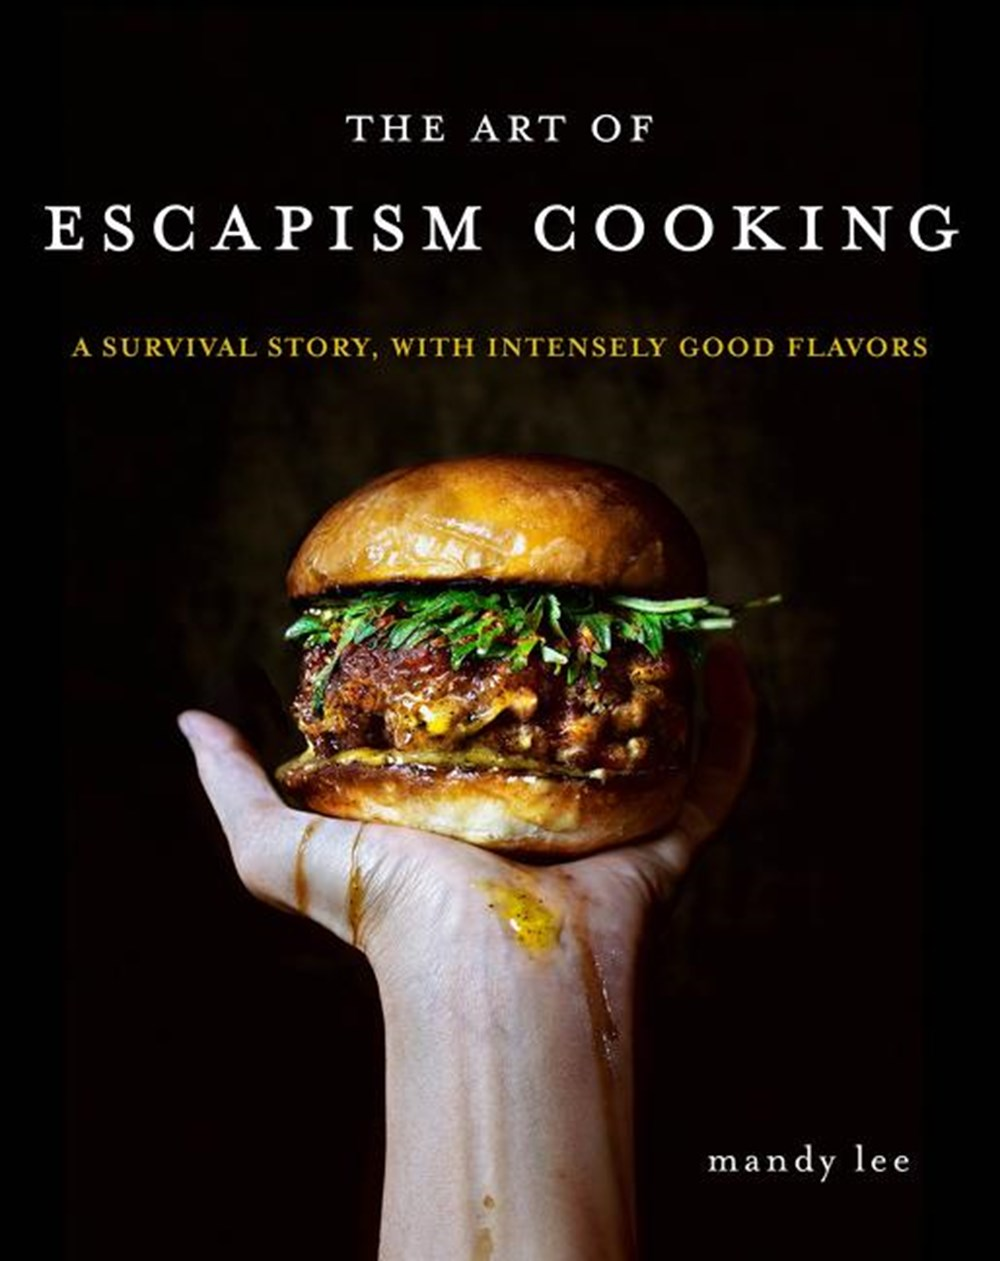 Art of Escapism Cooking A Survival Story, with Intensely Good Flavors